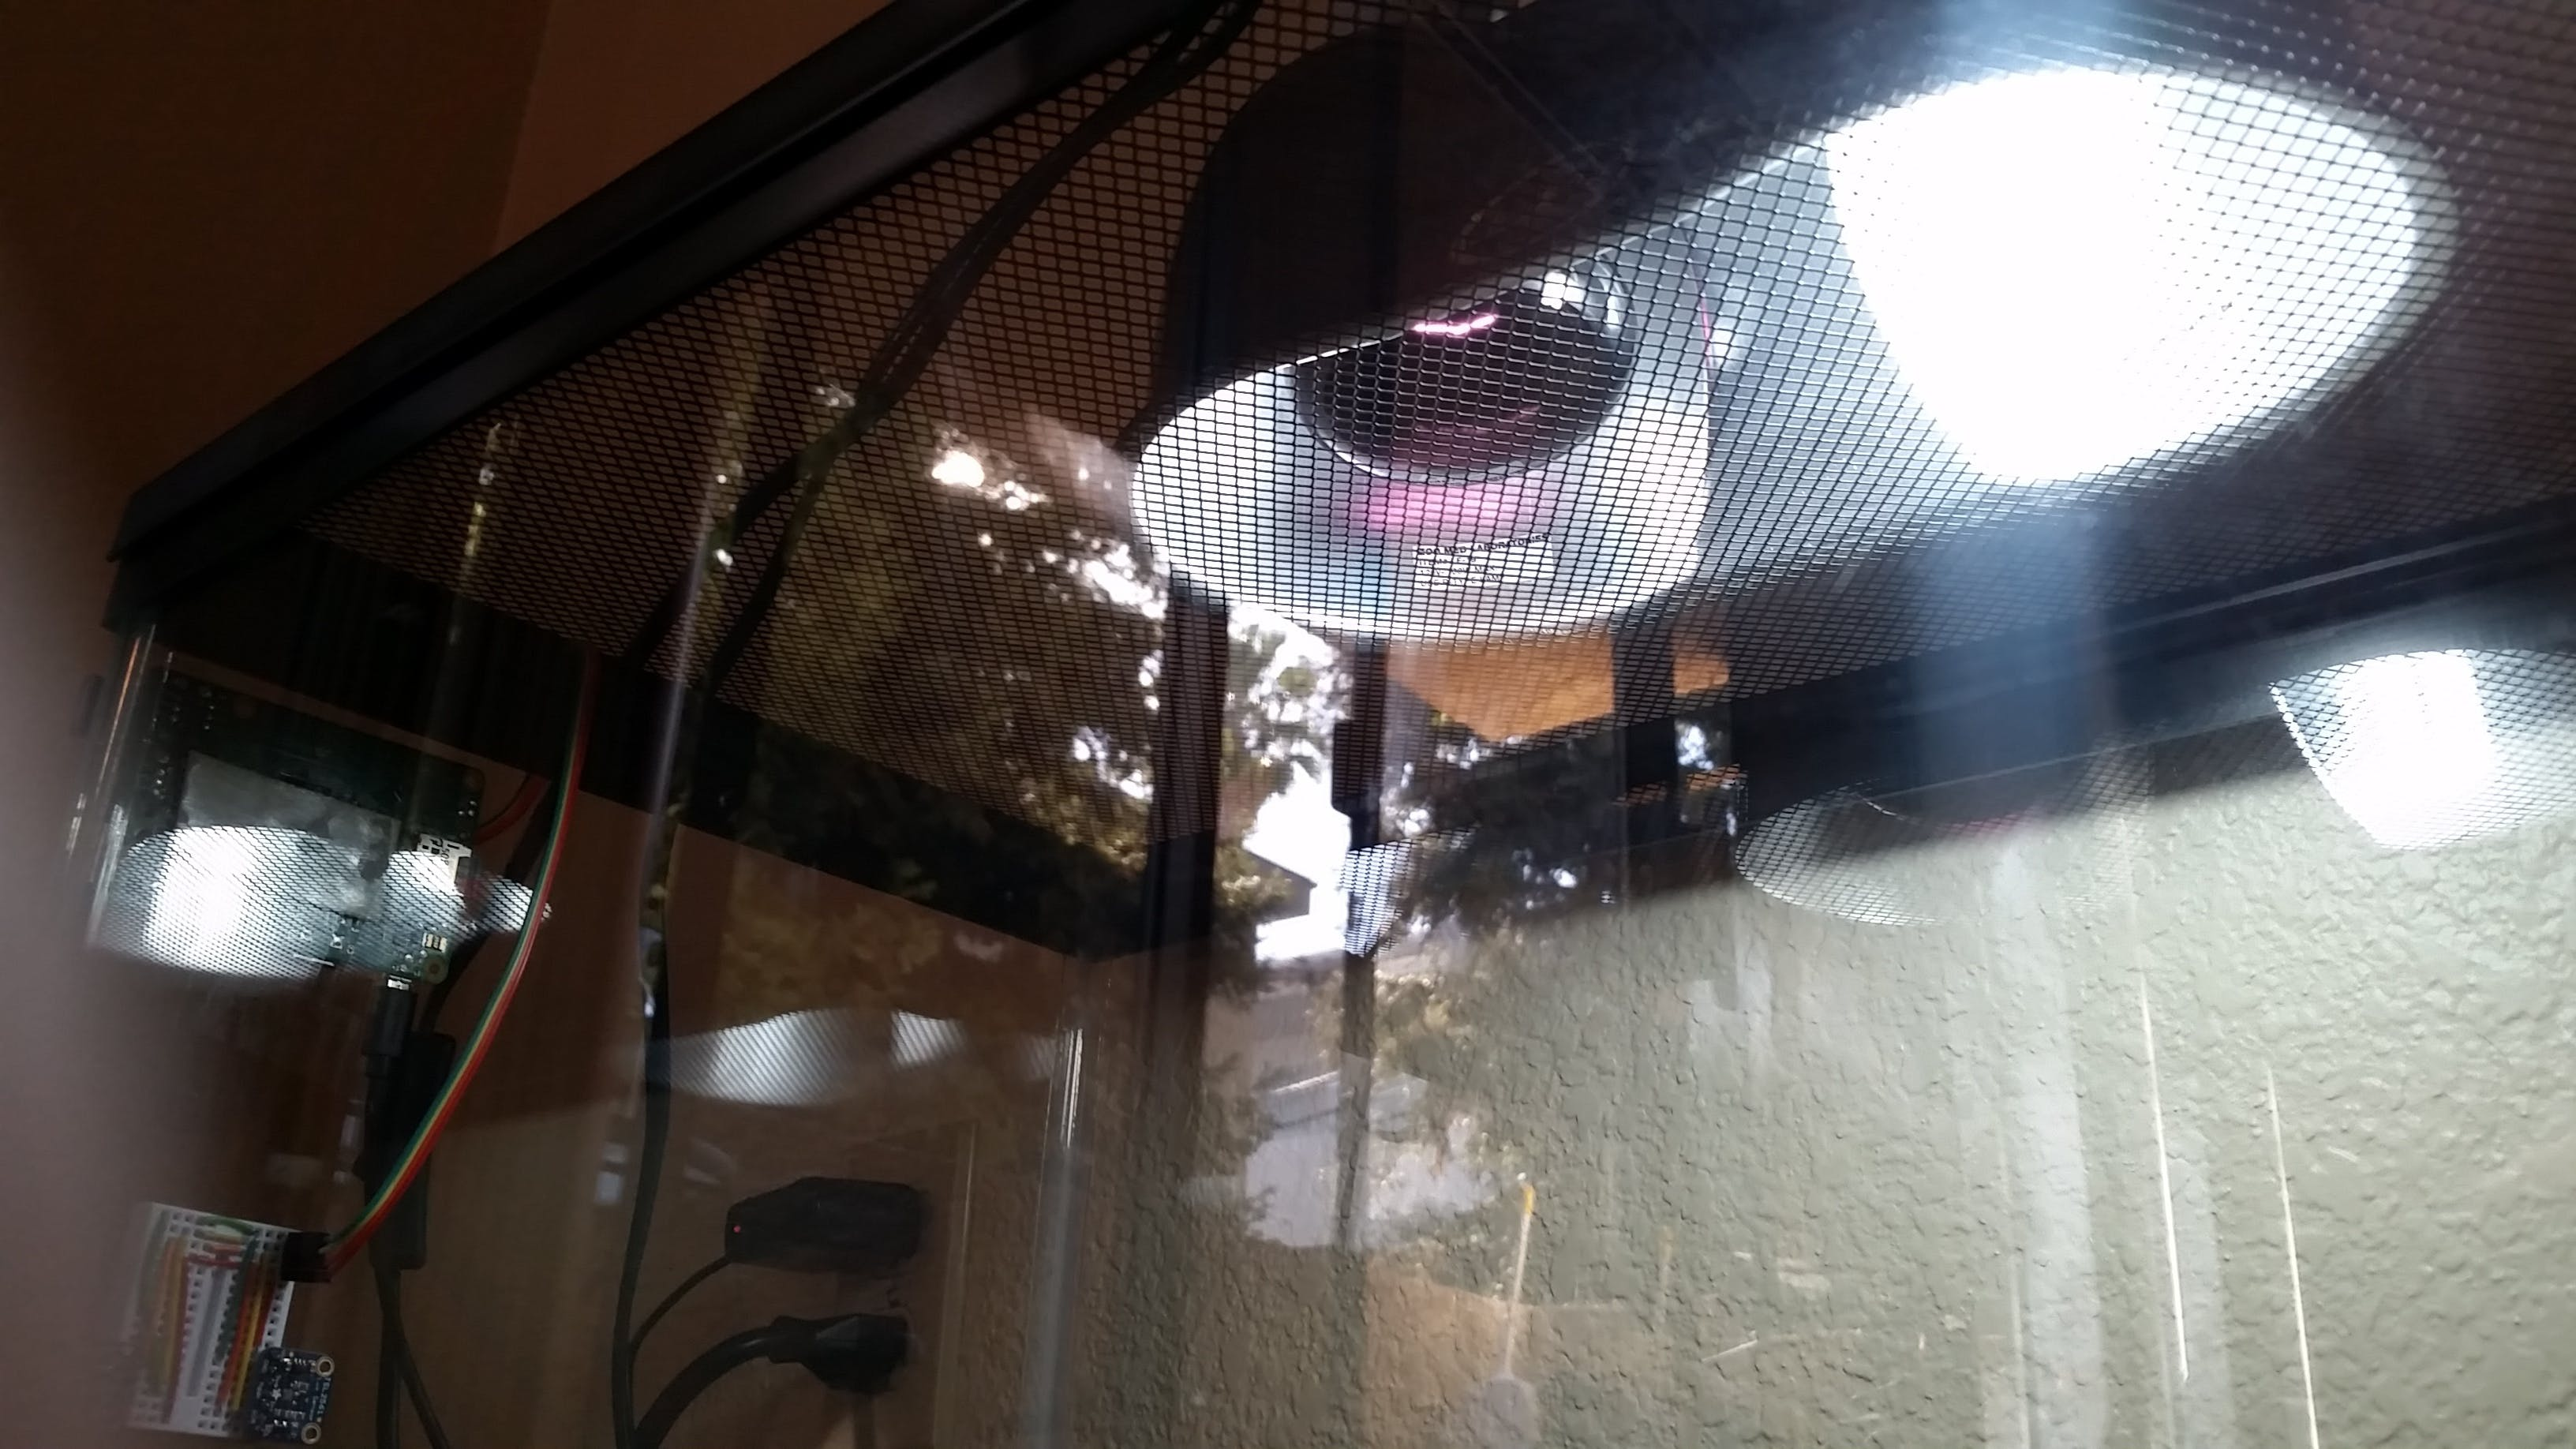 The heat lamp and light lamp